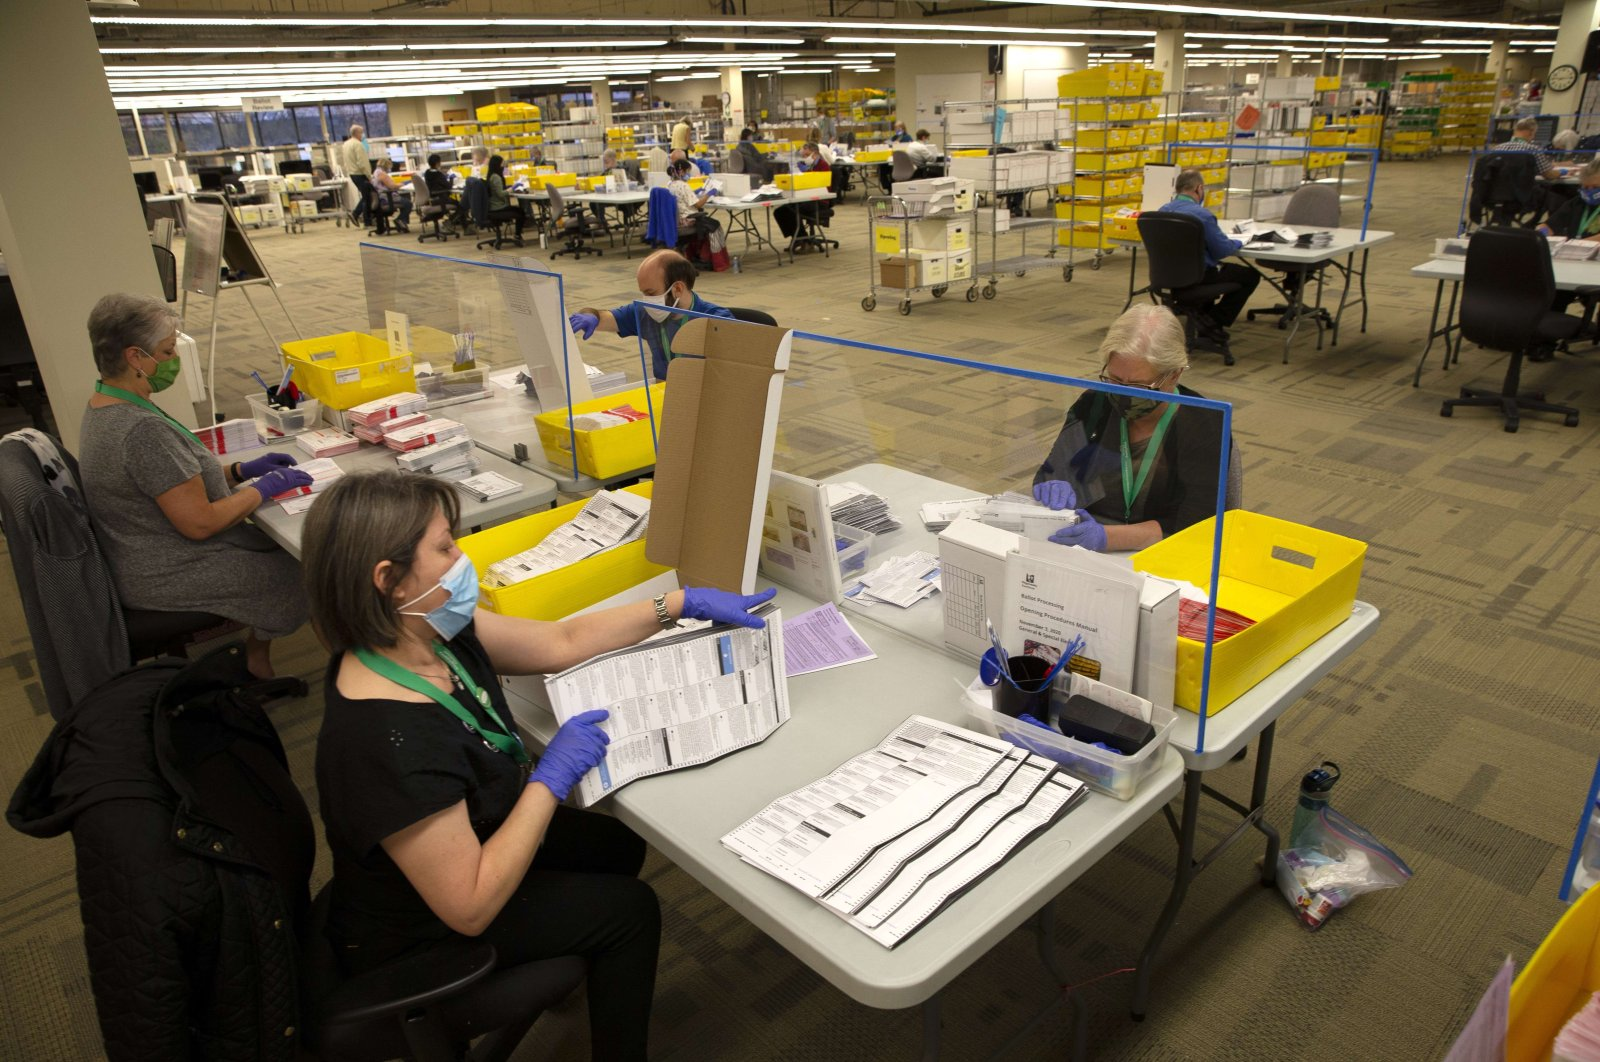 King County Elections worker Nora Al Gwahery (bottom), opens ballots at the King County Elections headquarters on November 3, 2020 in Renton, Washington. (AFP Photo)